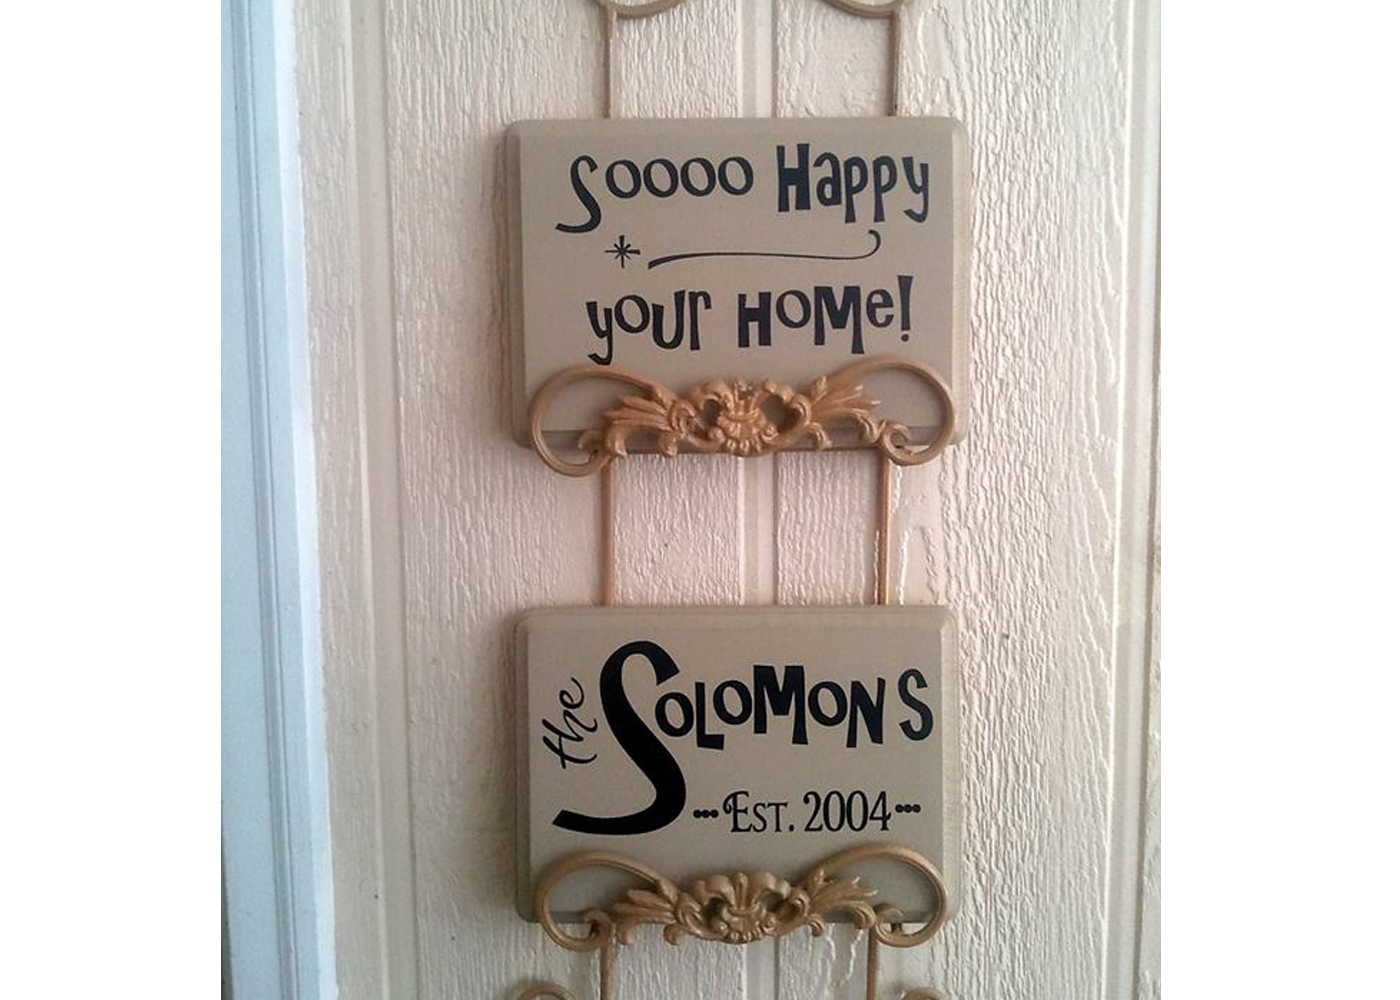 soooo-happy-your-home-custom-wall-decal-for-boards.jpg